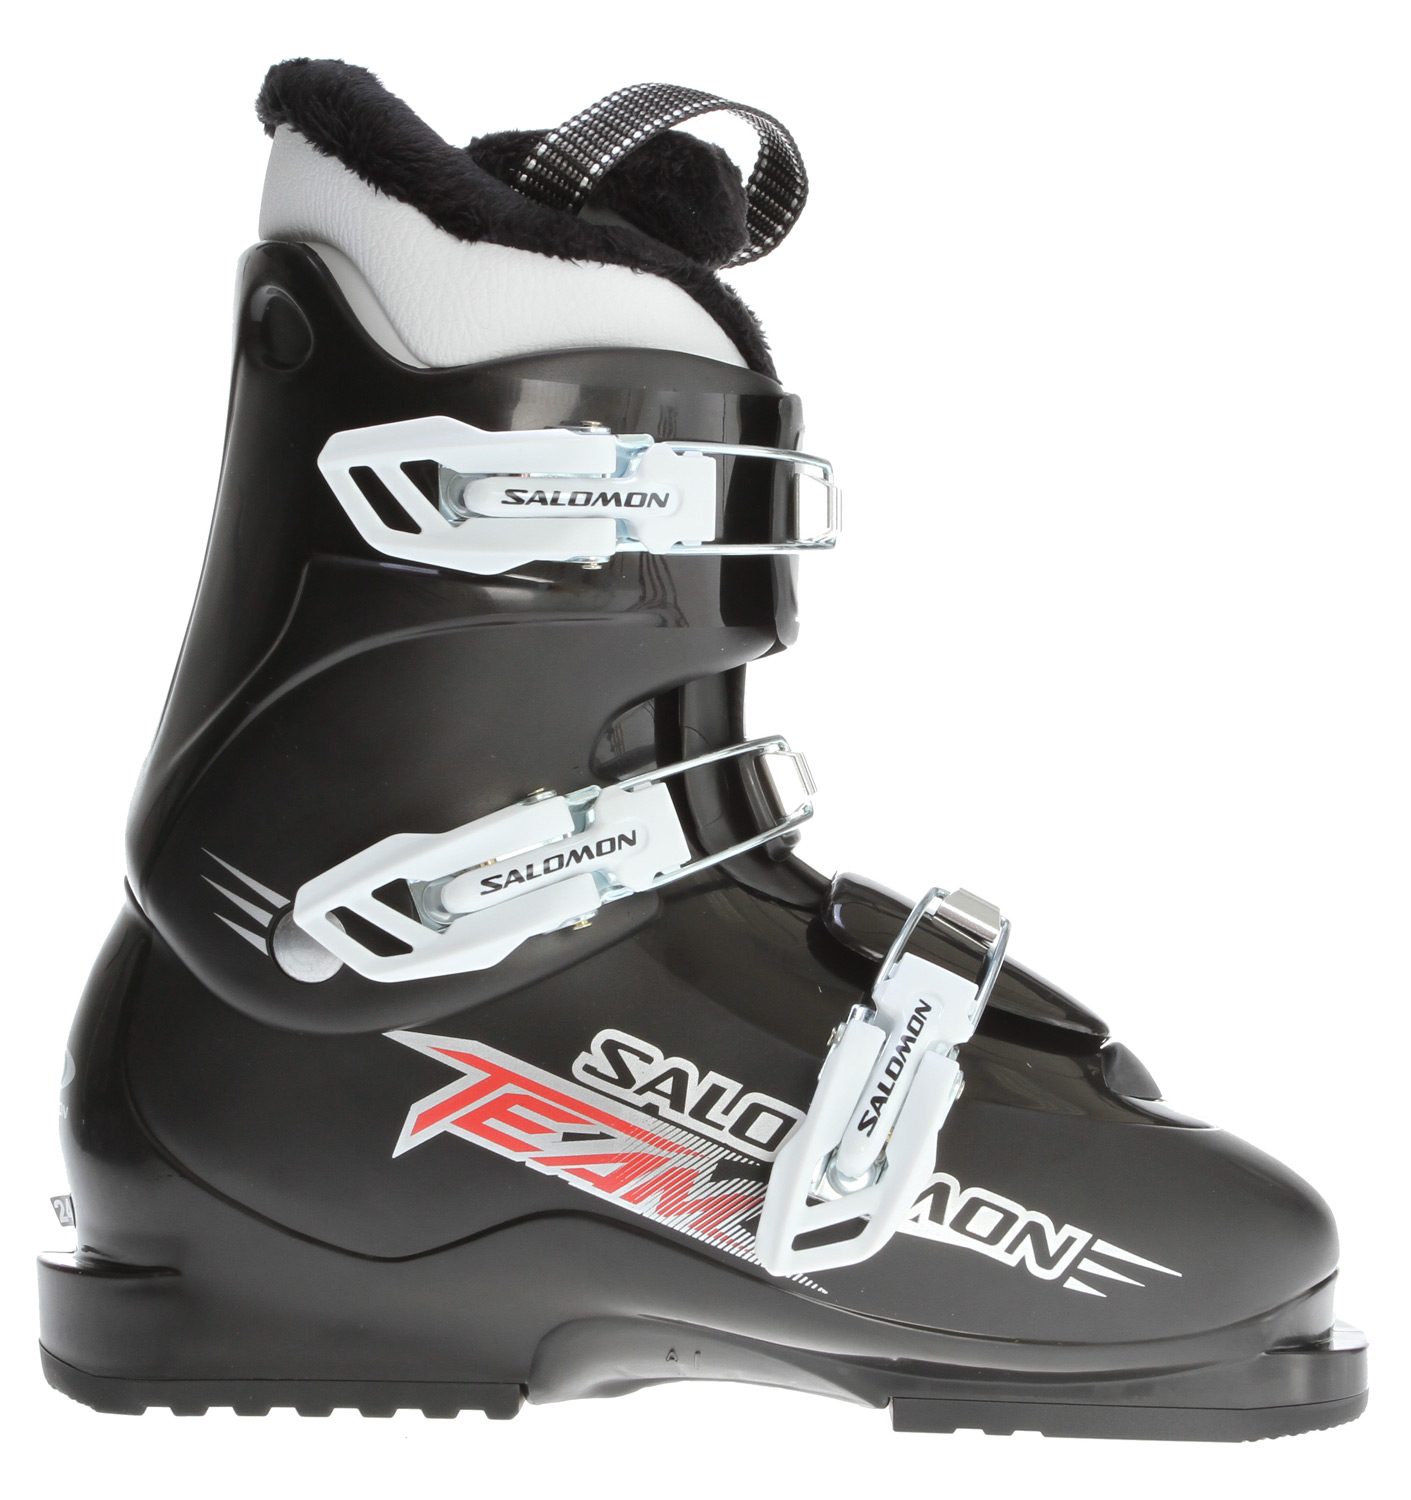 Ski Key Features of the Salomon Team Ski Boots: Mono Material Pp Lower Shell Mono Material Pp Upper Cuff Specific Junior Cuff Thermicfit Fur 3 Vario Plastic Buckles - $76.95